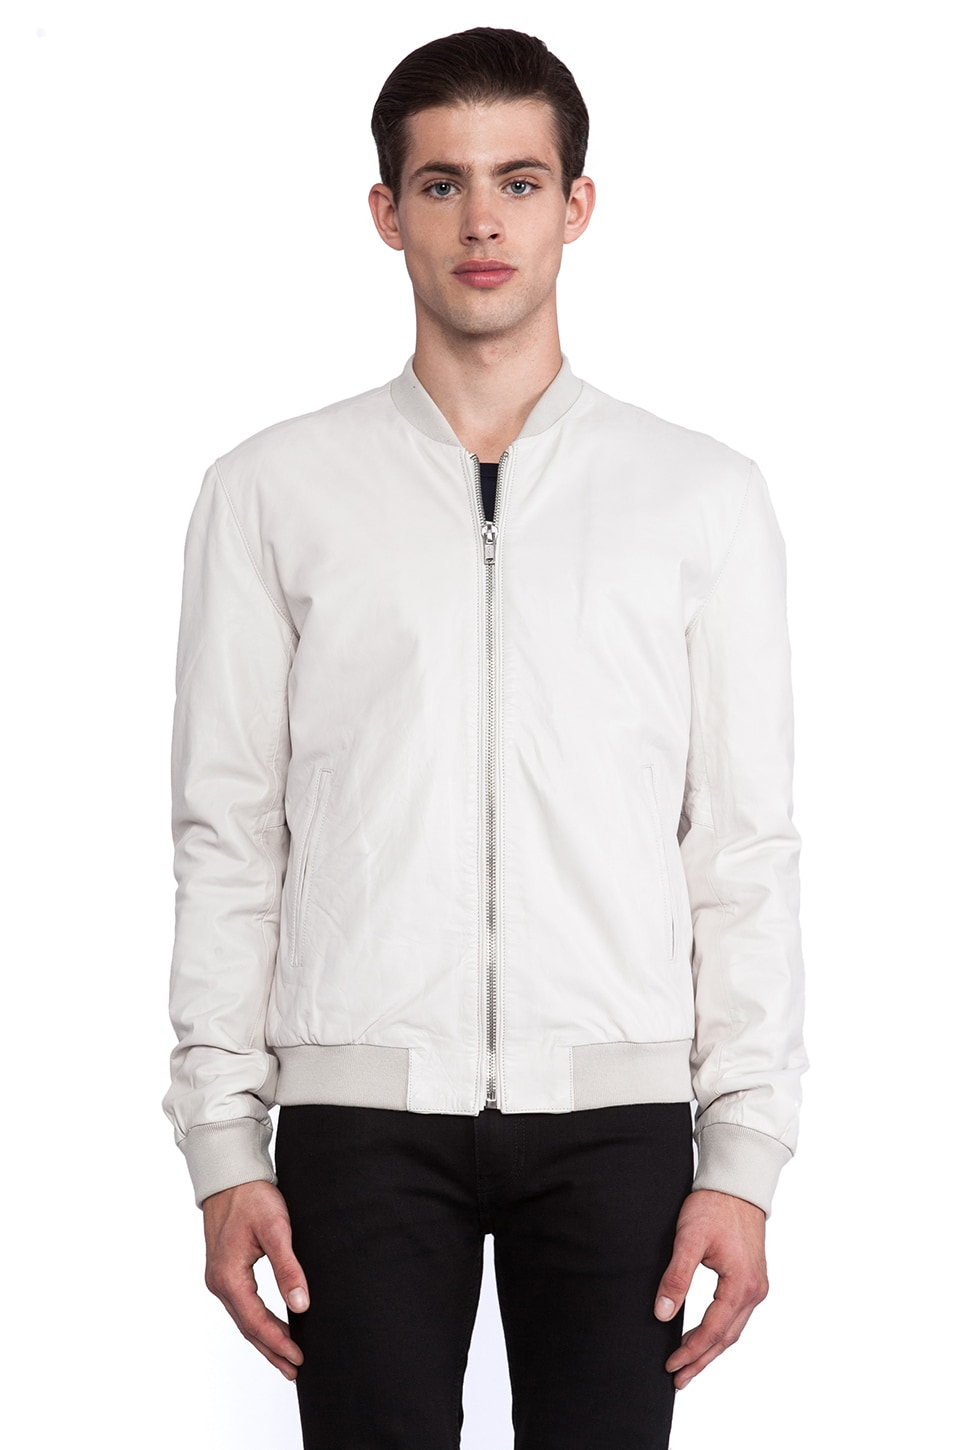 BLK DNM Leather Jacket 81 in Dust White